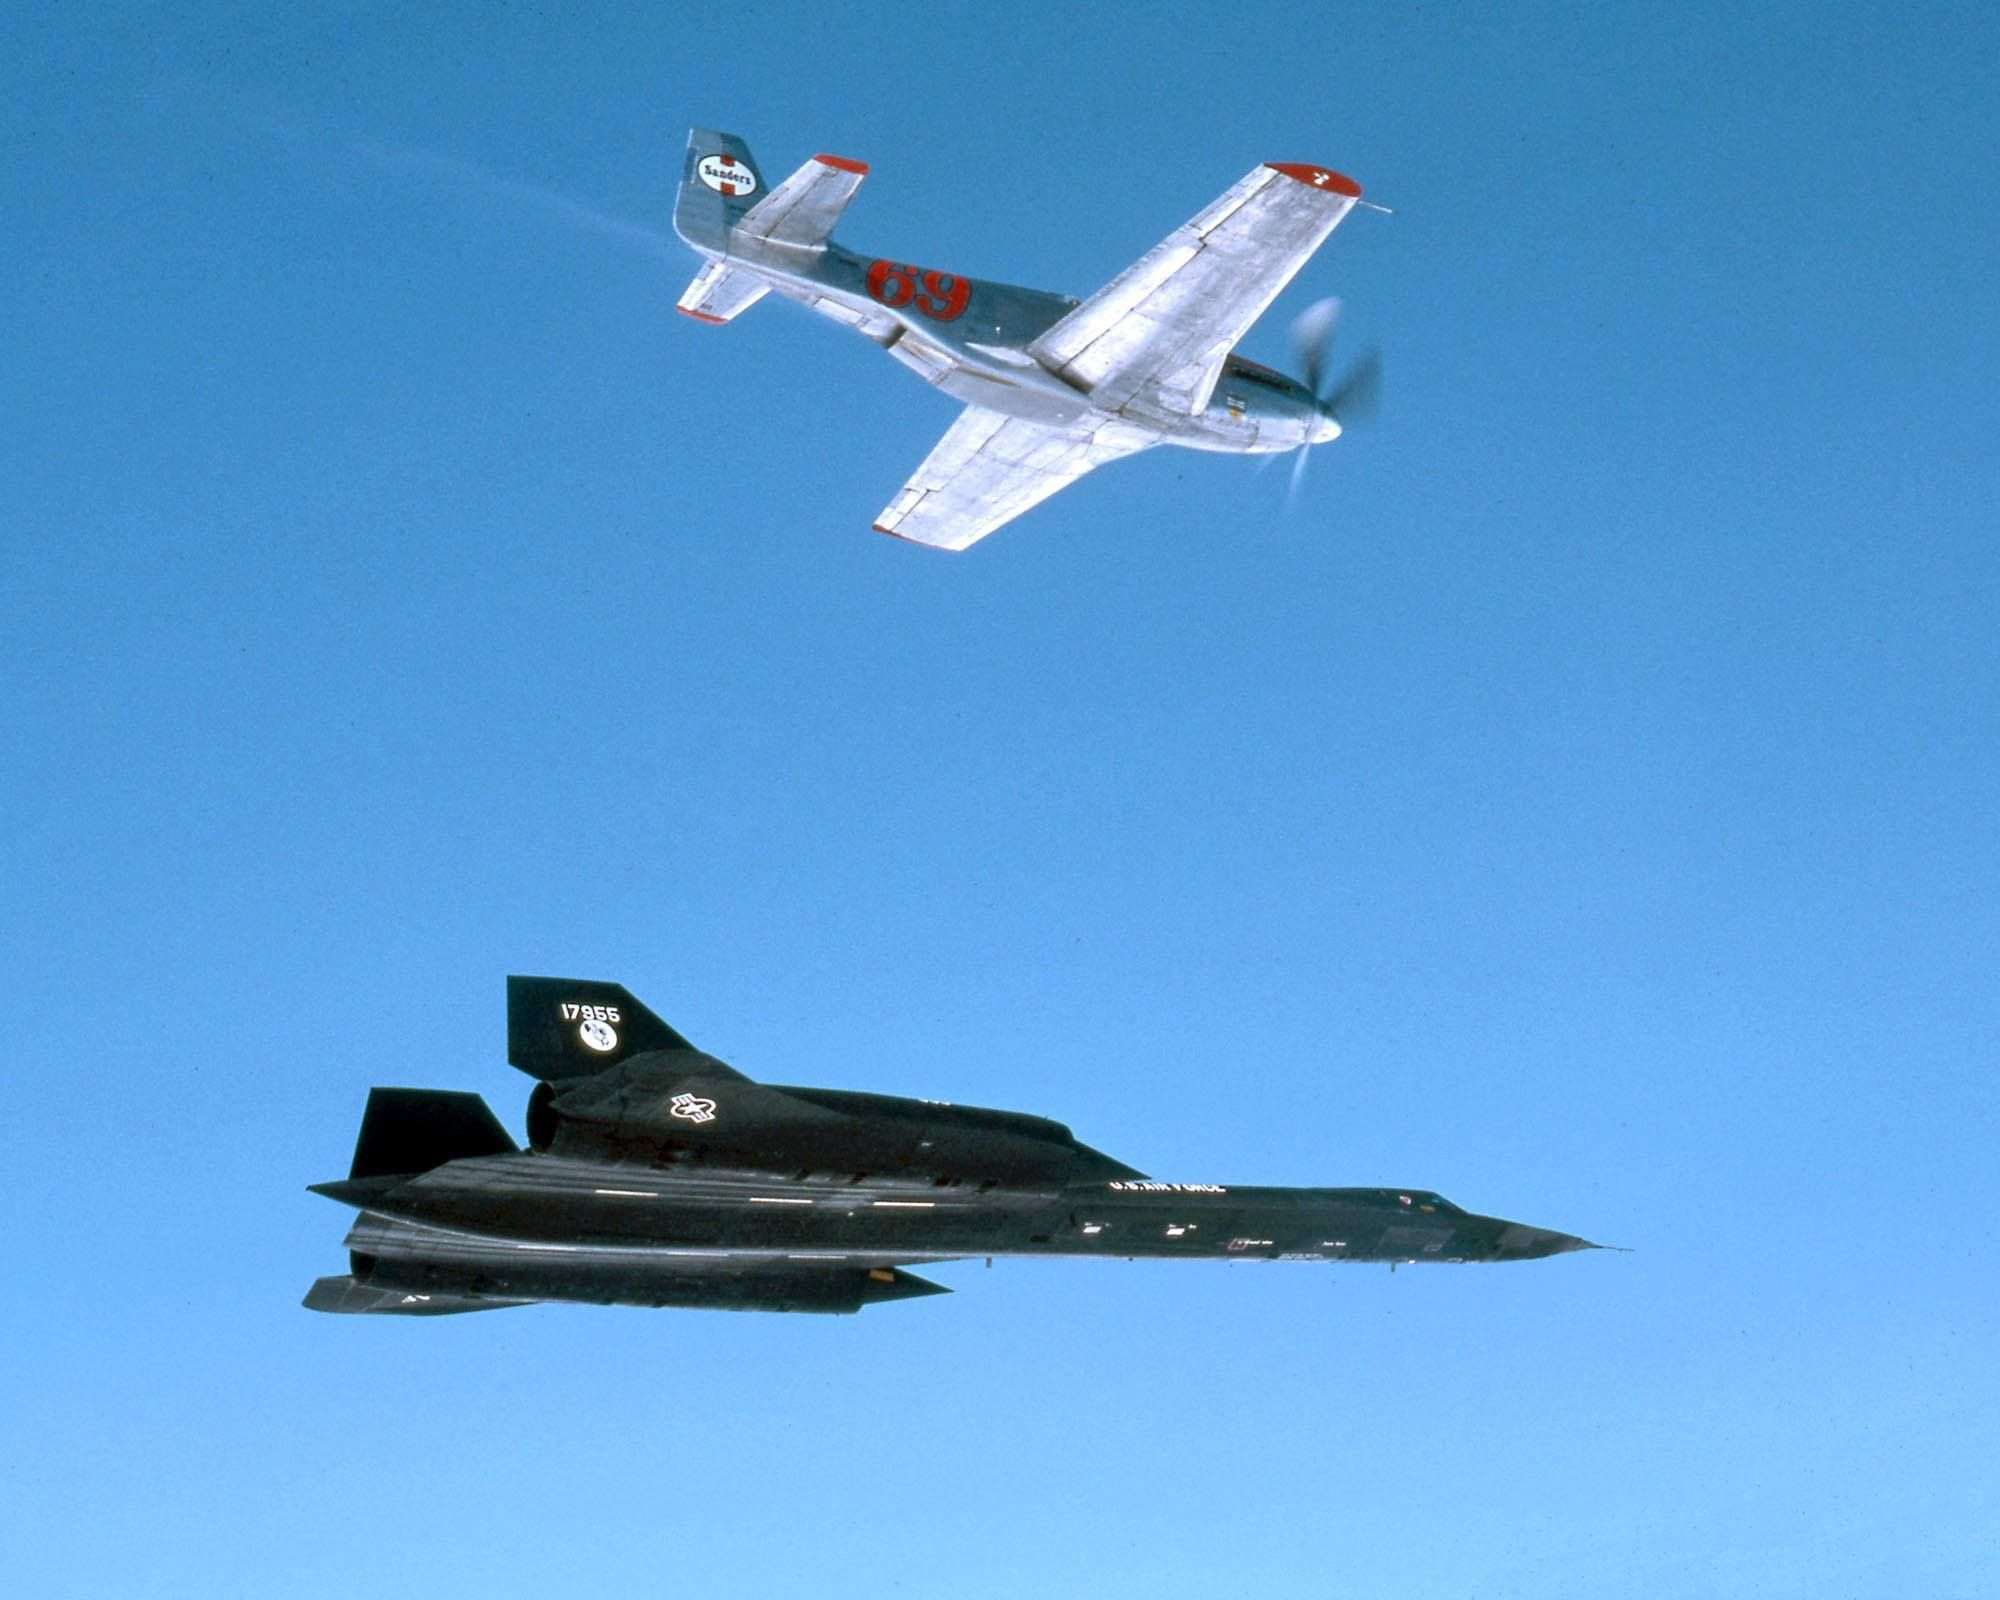 The fastest prop and fastest jet perform the fastest formation record